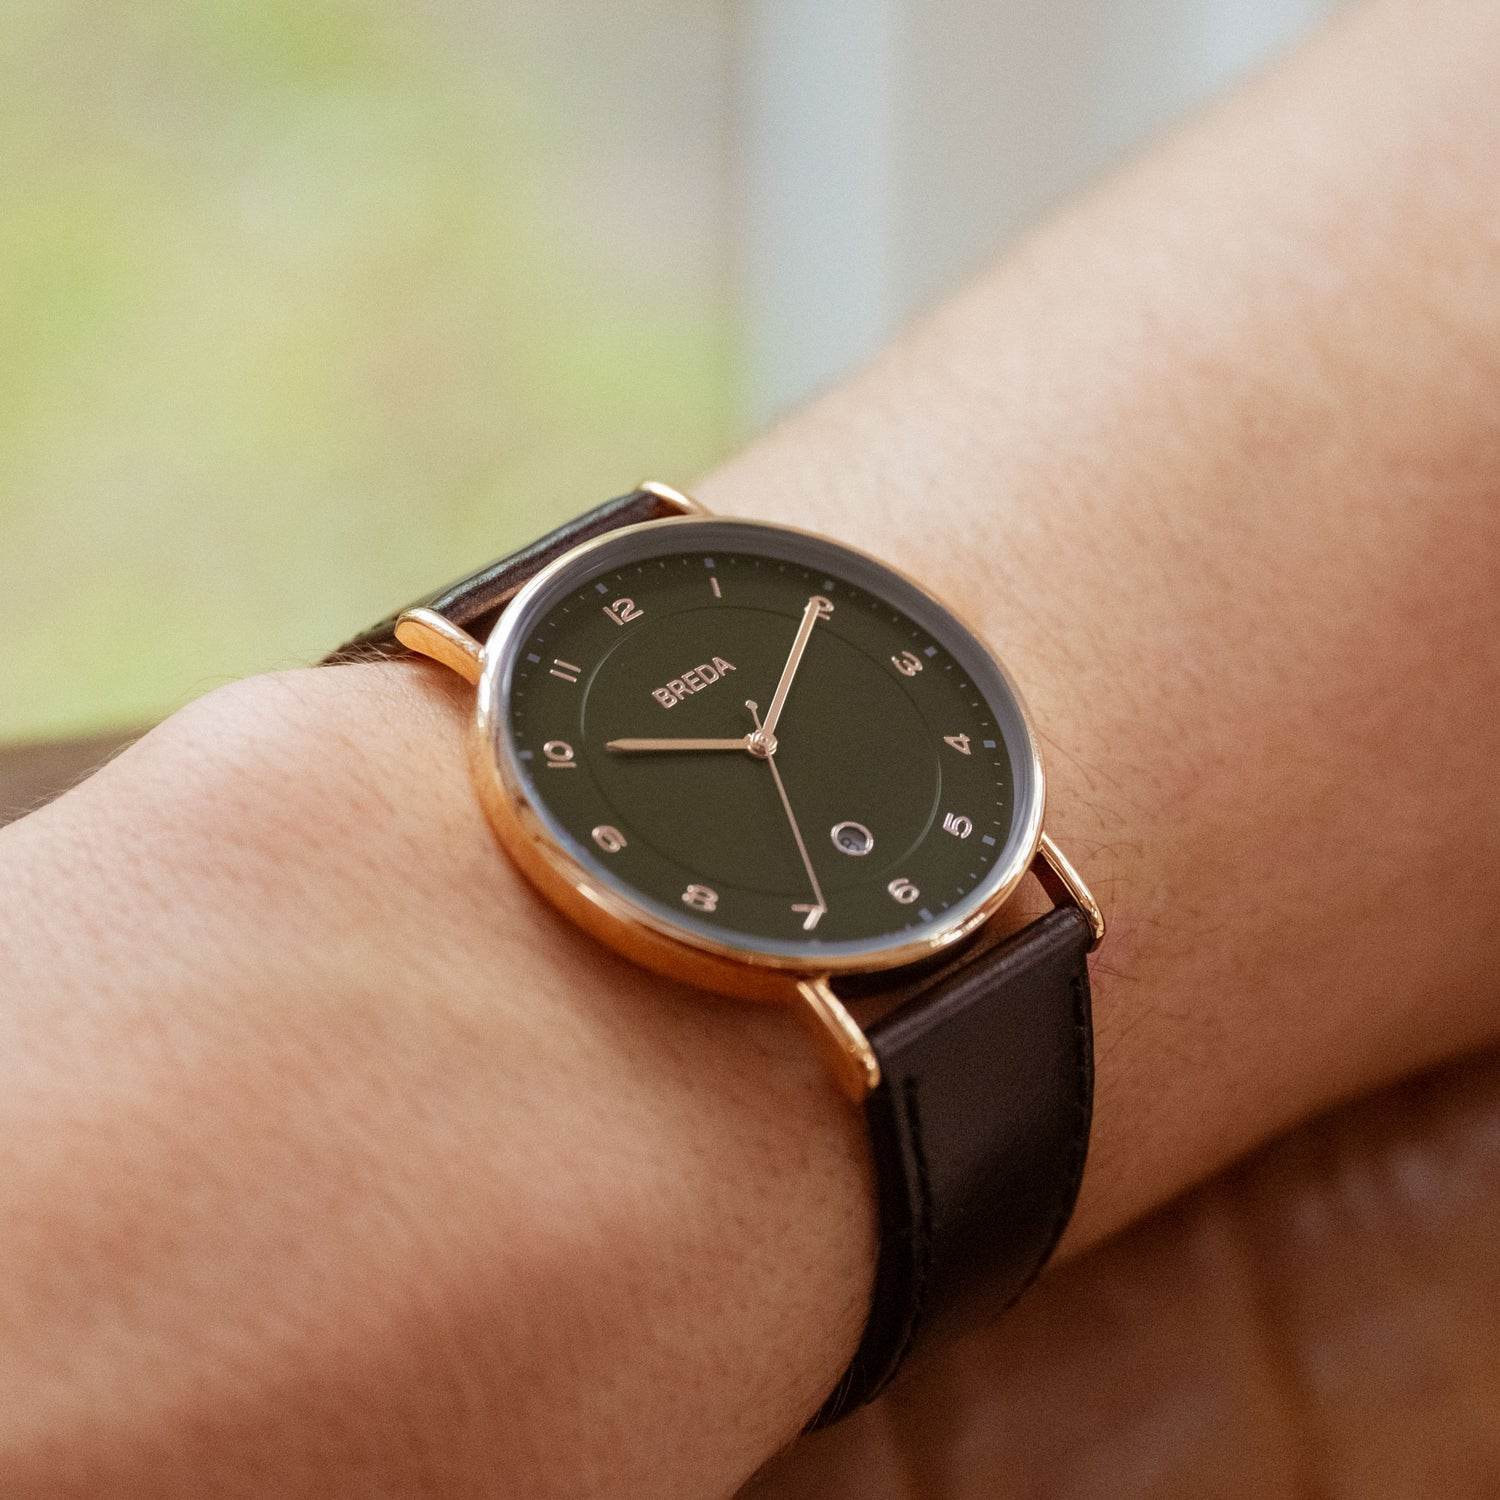 breda-pei-1739d-rosegold-black-leather-watch-lifestyle